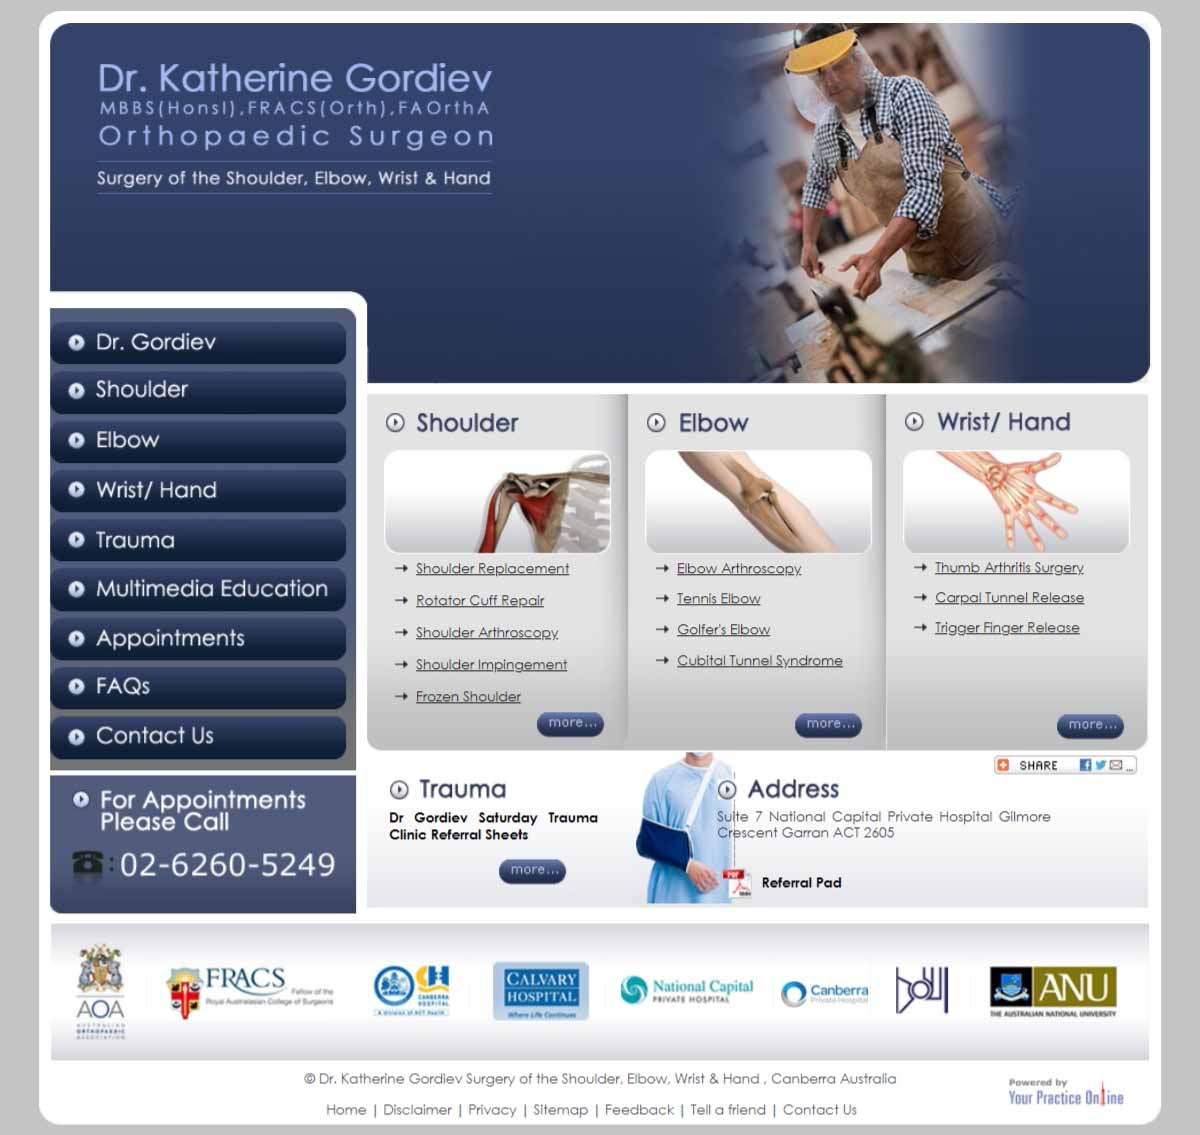 Website for Orthopaedic Shoulder, Elbow, Wrist & Hand Surgeon